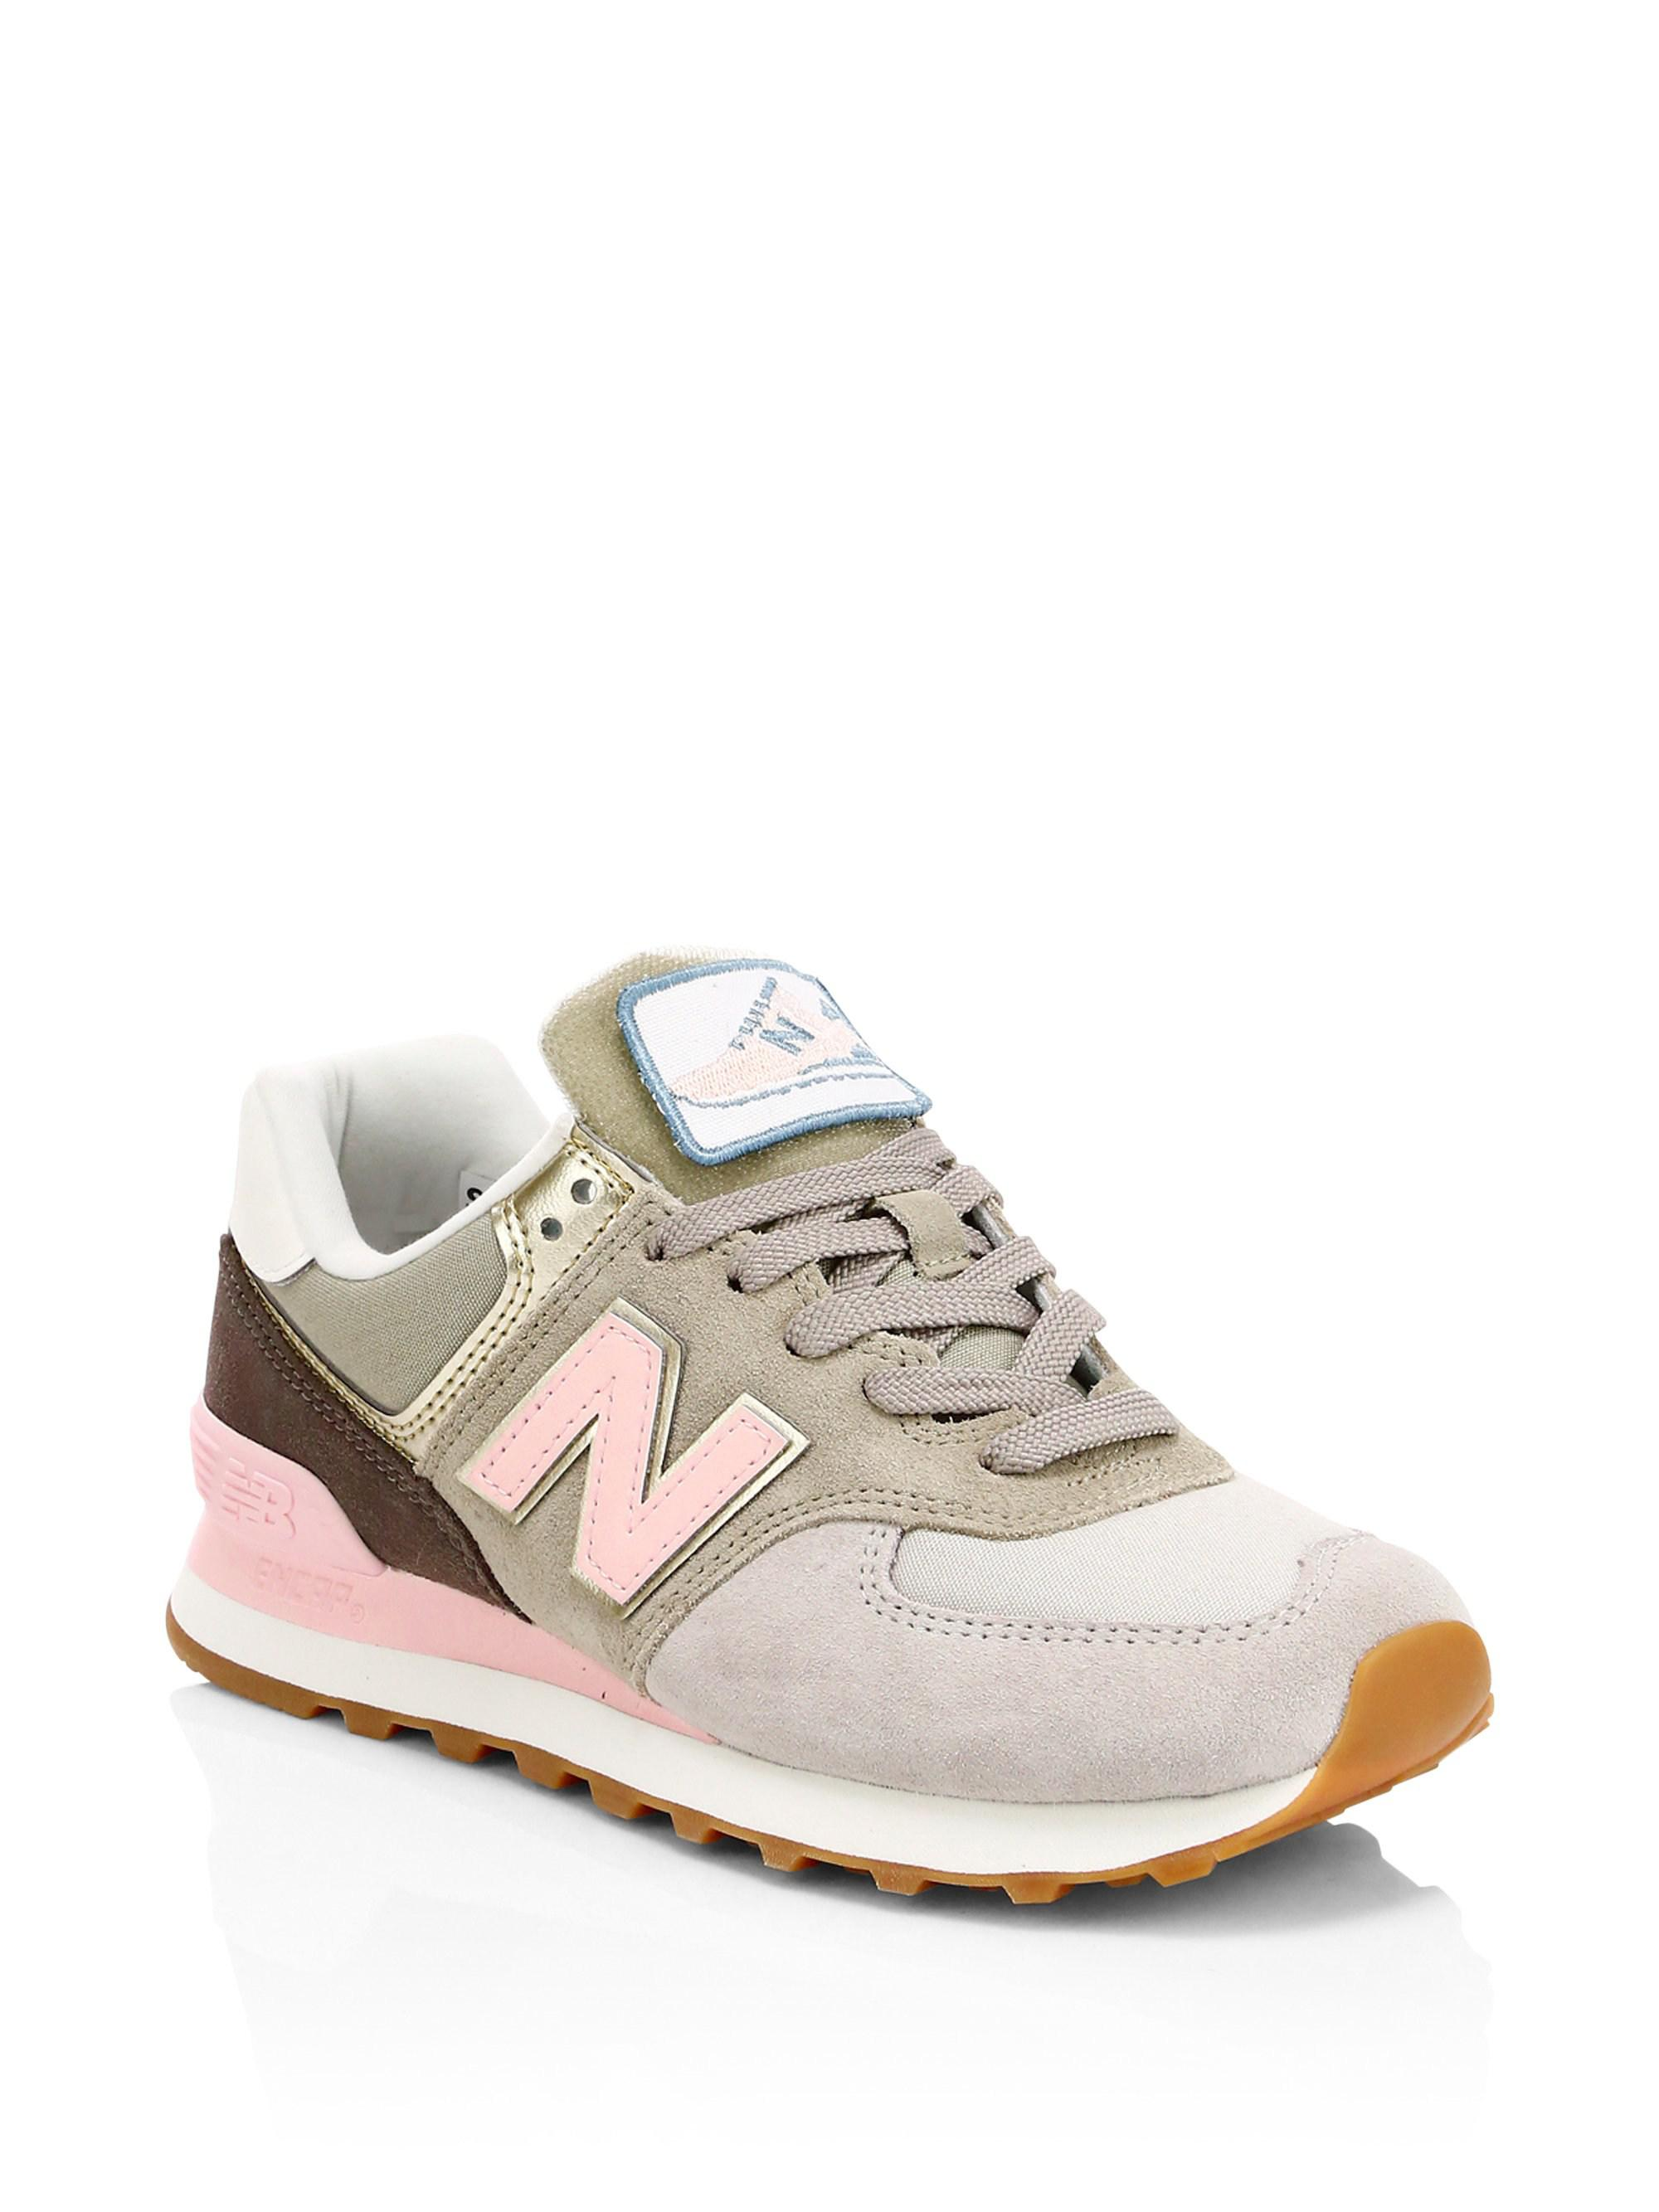 new balance patchwork